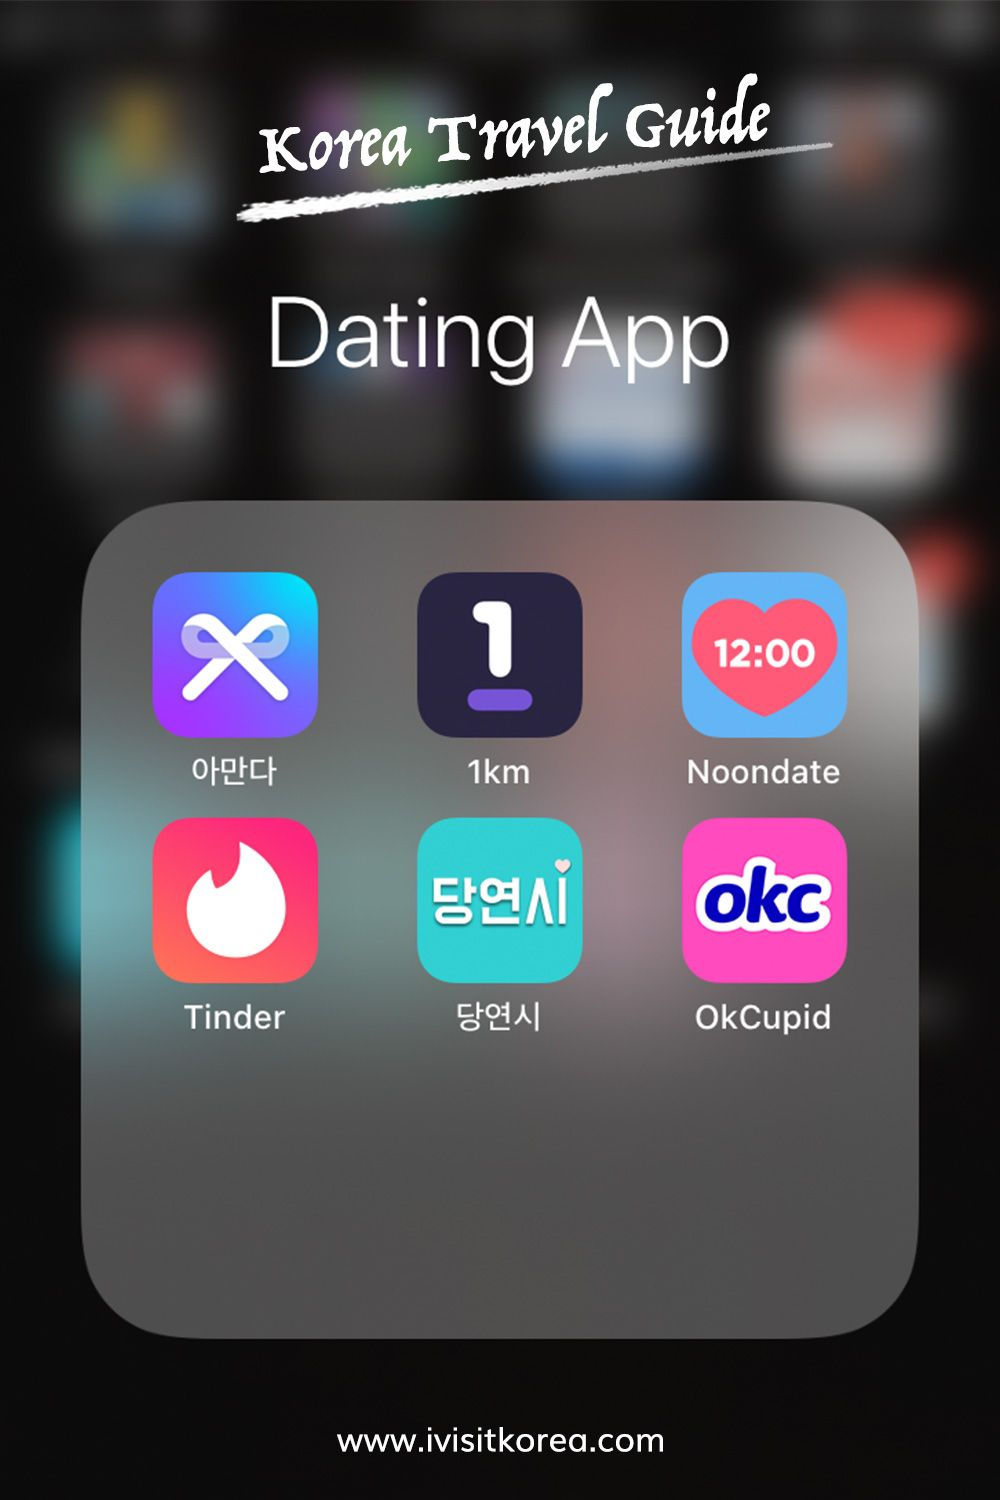 The best dating app